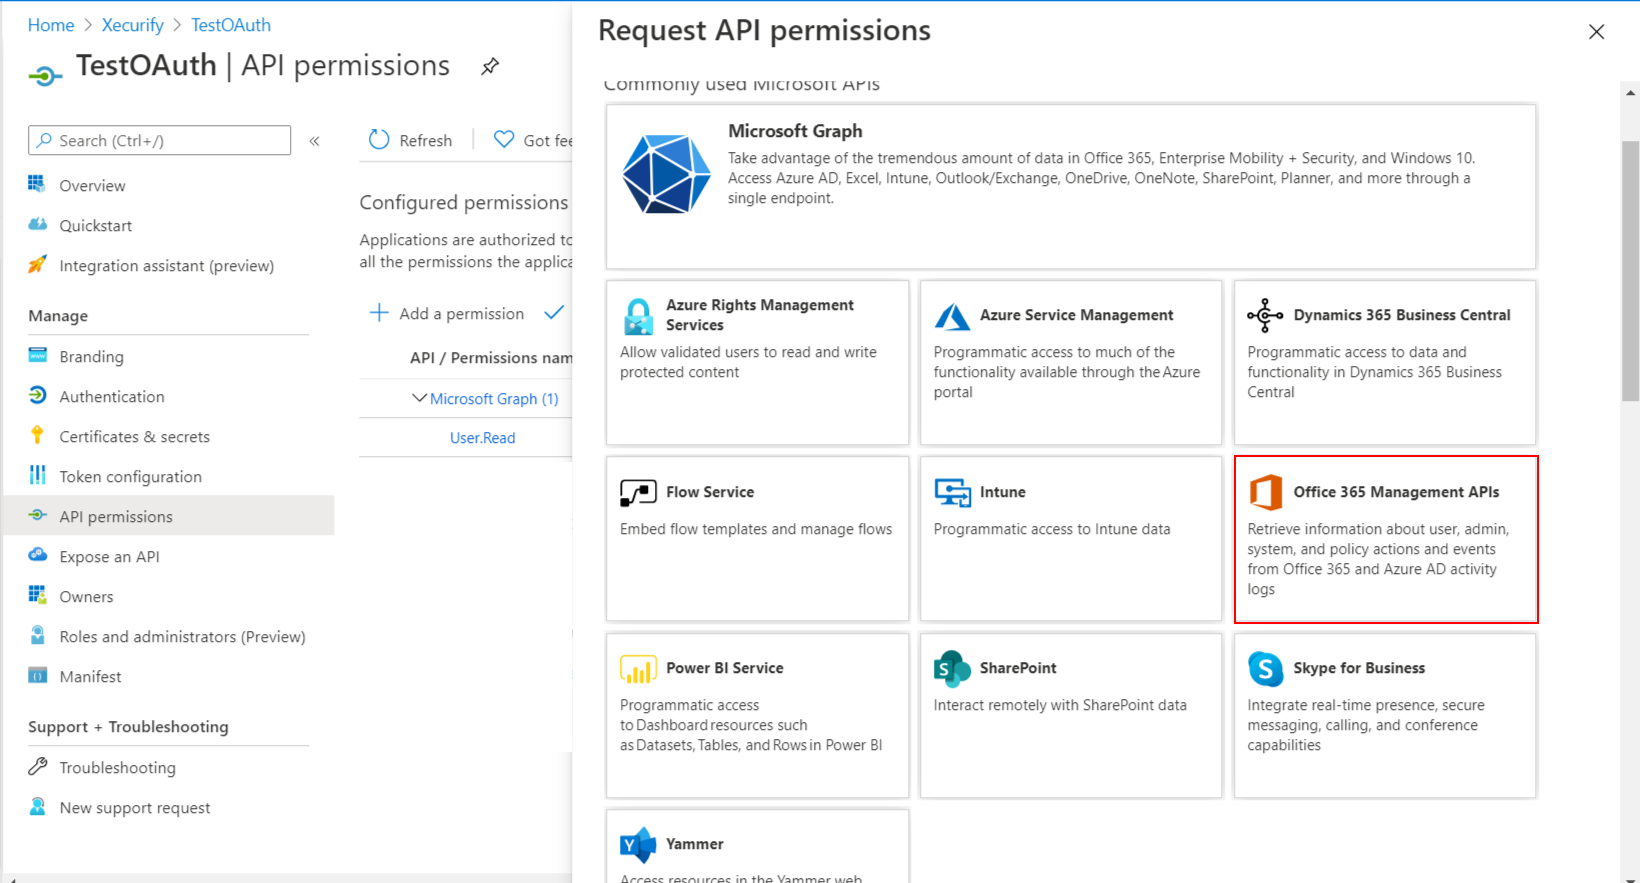 OAuth/OpenID/OIDC Single Sign On (SSO), office 365 SSO office 365 management